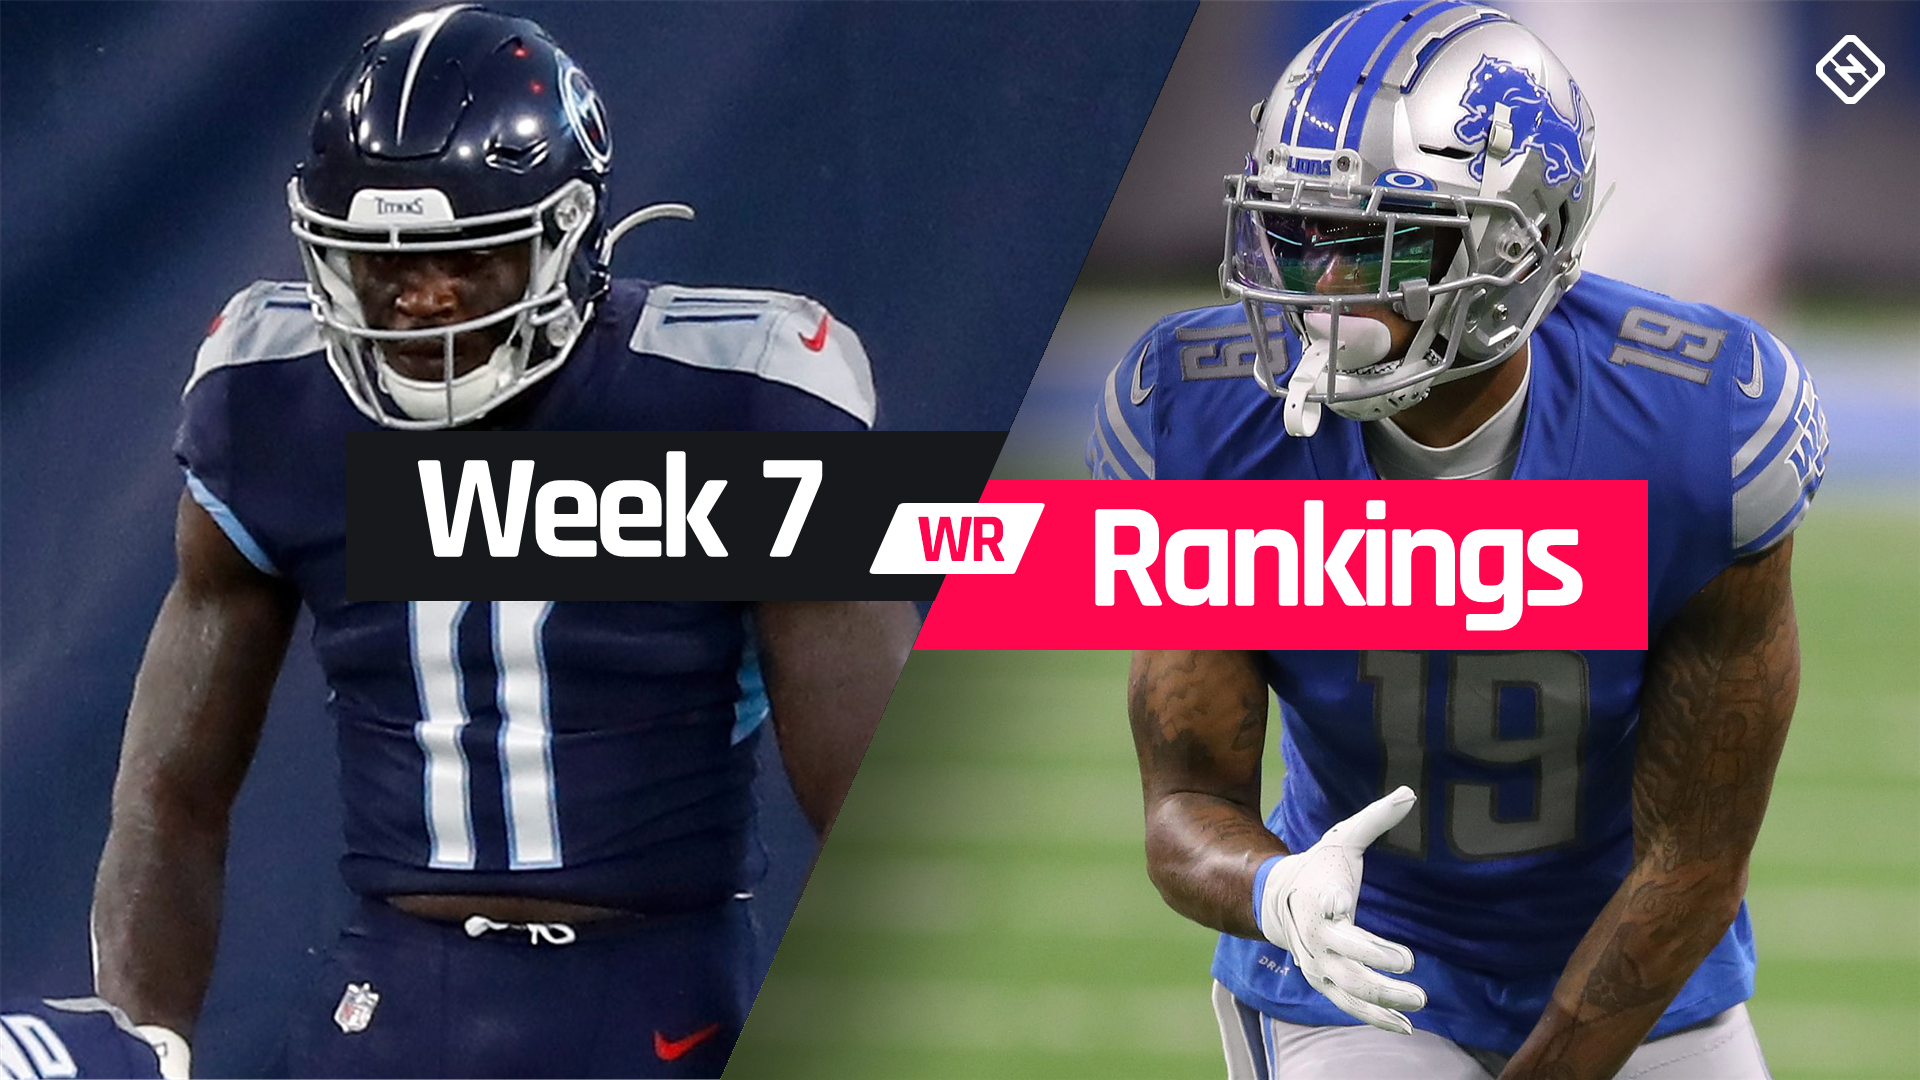 Week 7 Fantasy WR Rankings: Must-starts, sleepers, potential busts at wide receiver